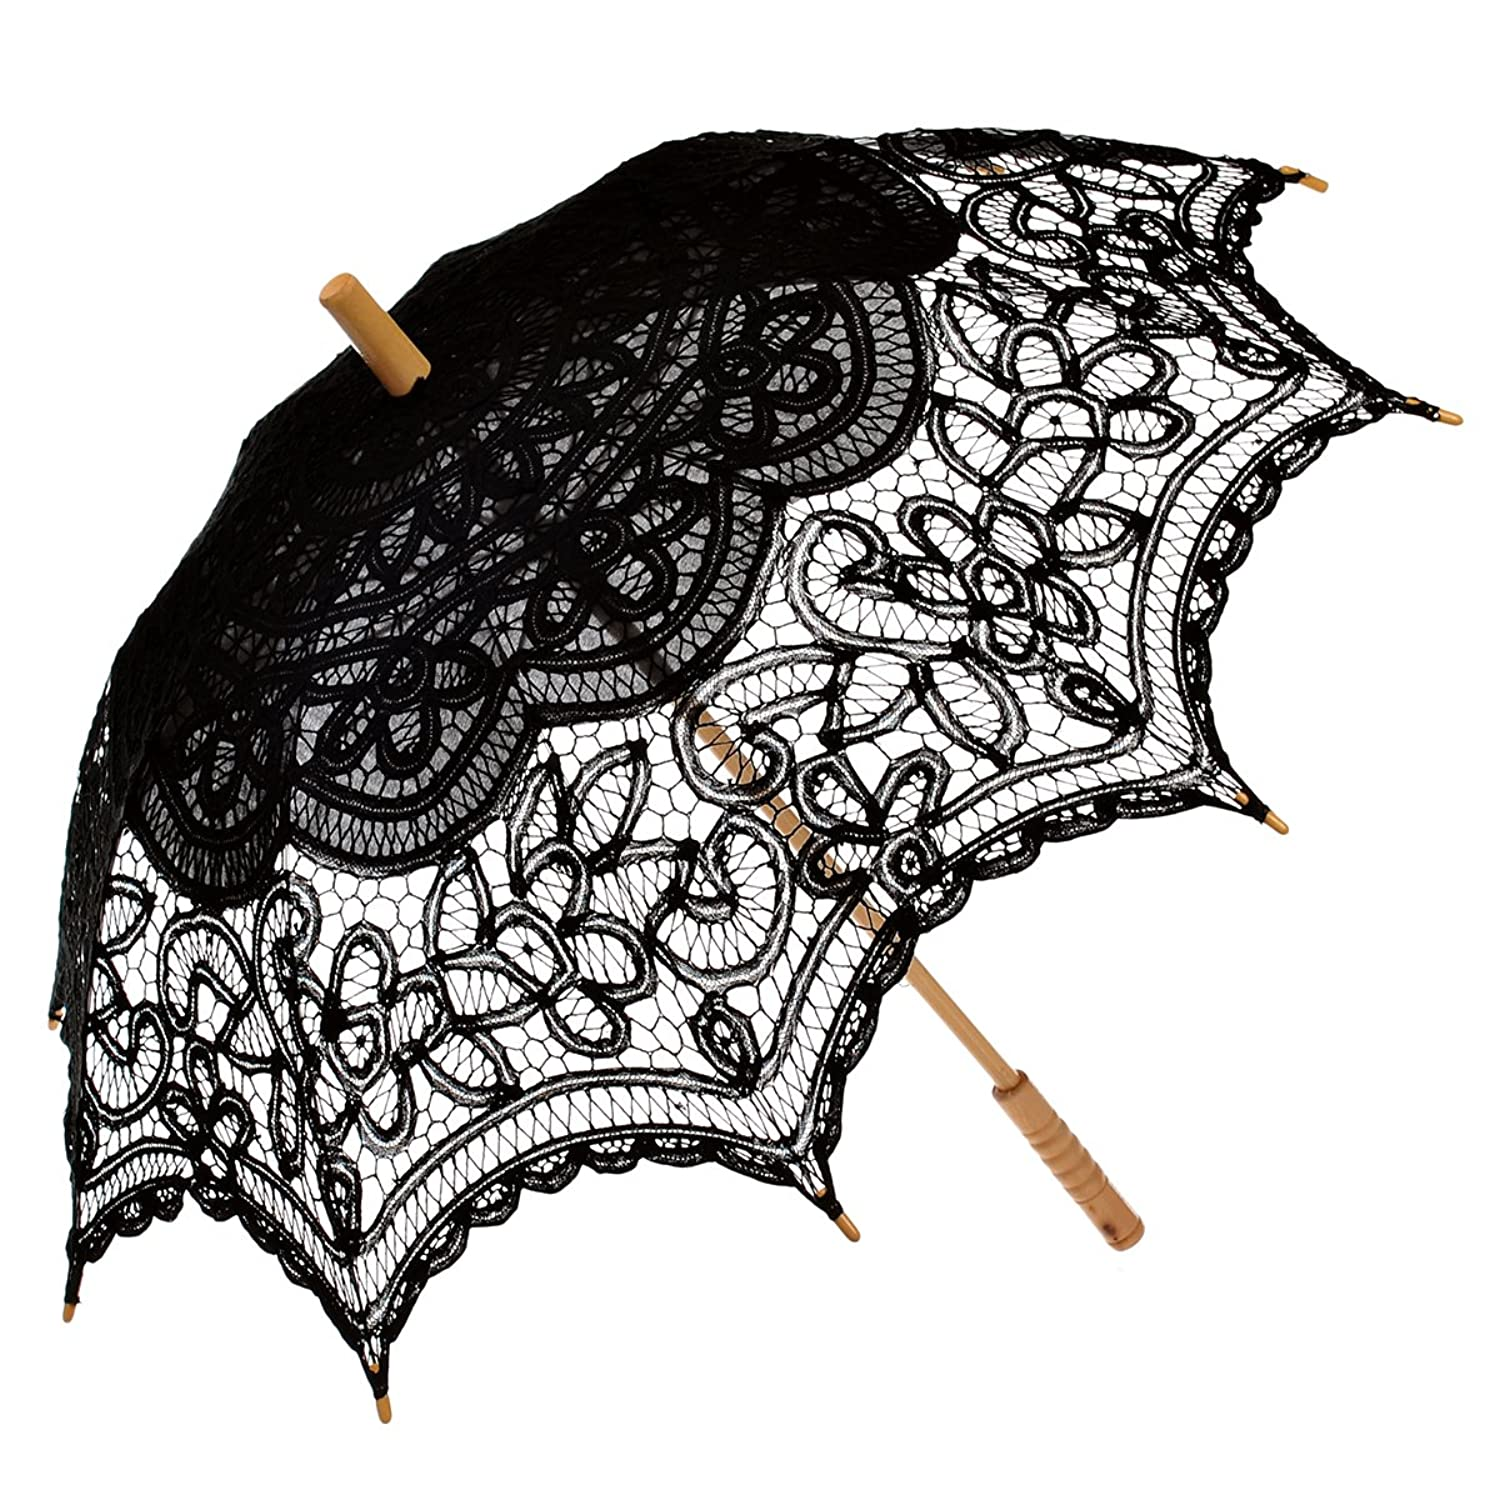 Vintage Style Parasols and Umbrellas  Lace Umbrella Photo Props Decoration                                             $24.99 AT vintagedancer.com